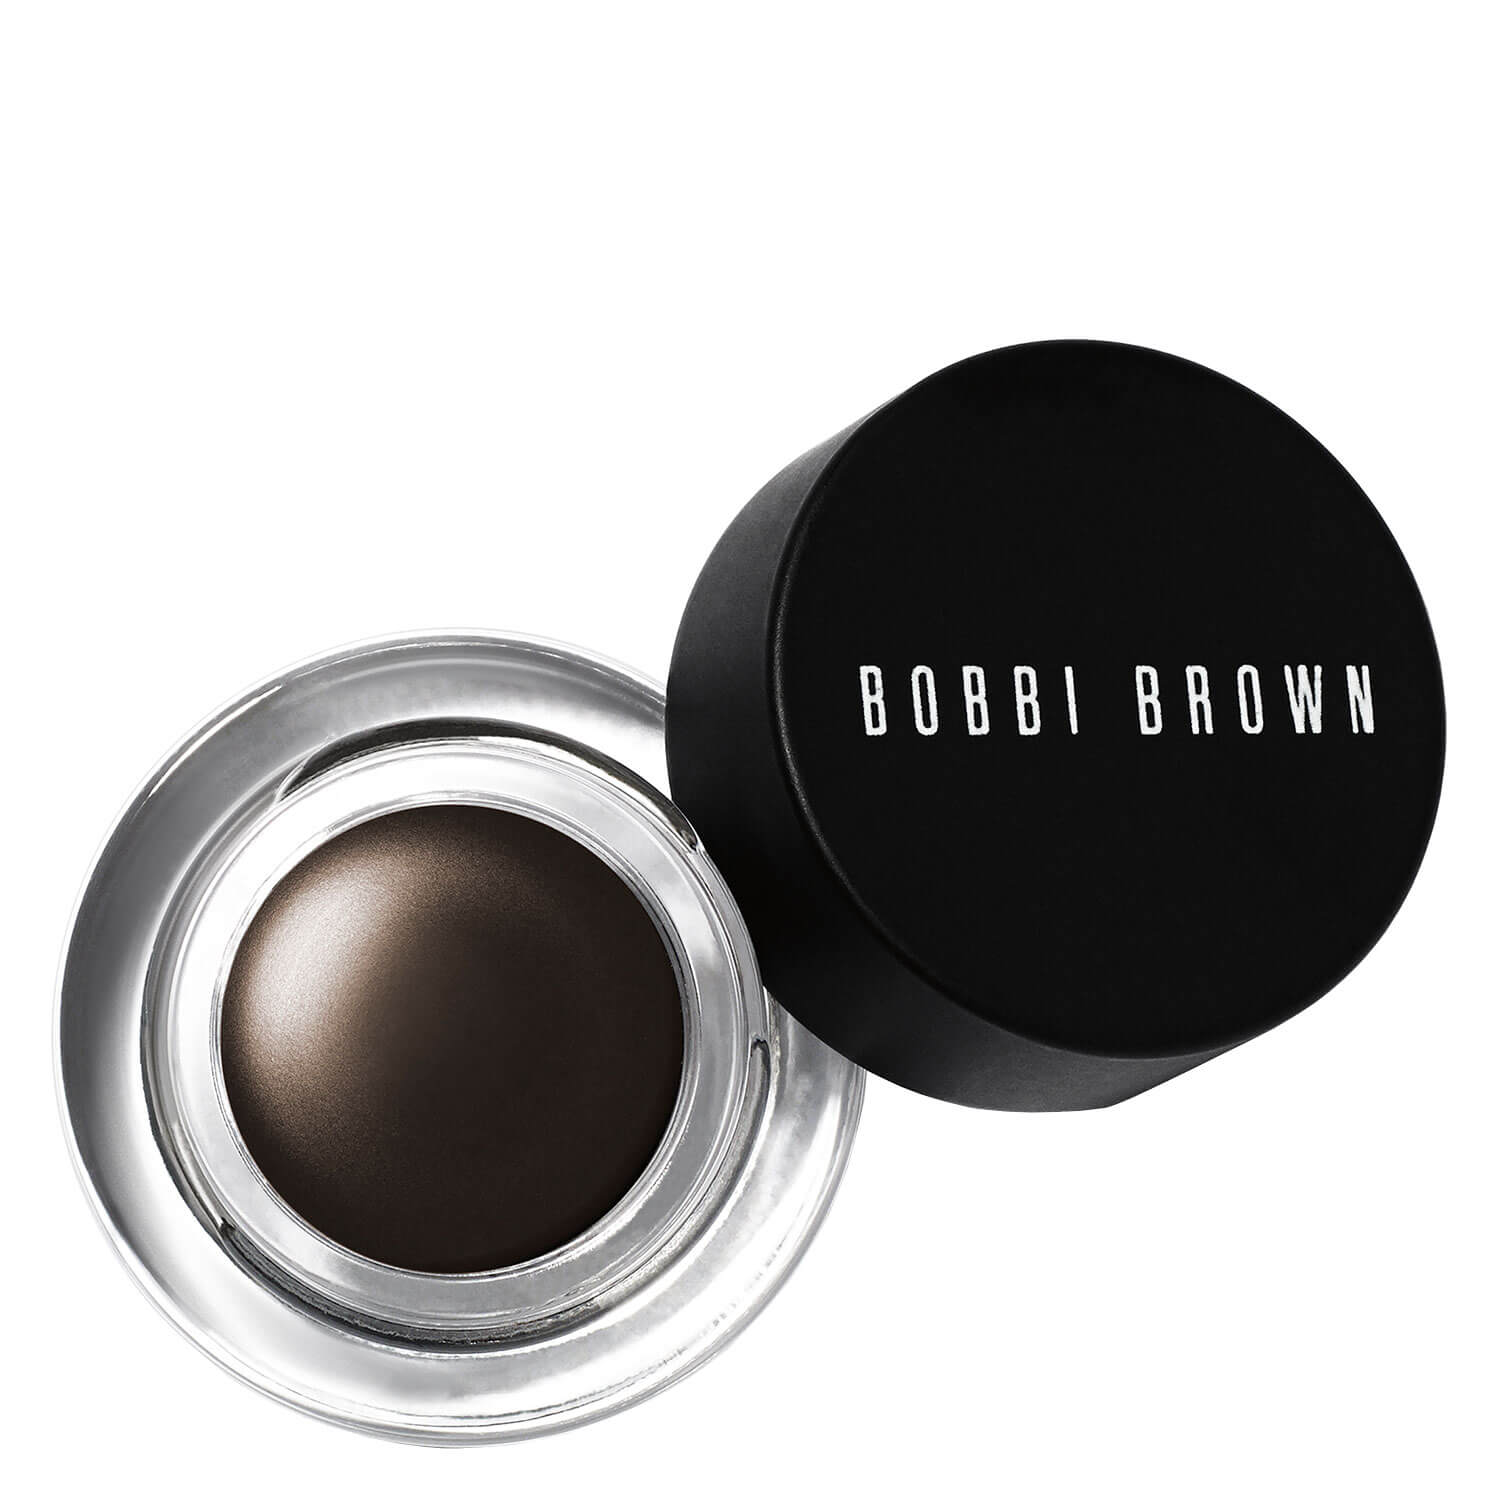 BB Eyeliner - Long-Wear Gel Eyeliner Espresso Ink